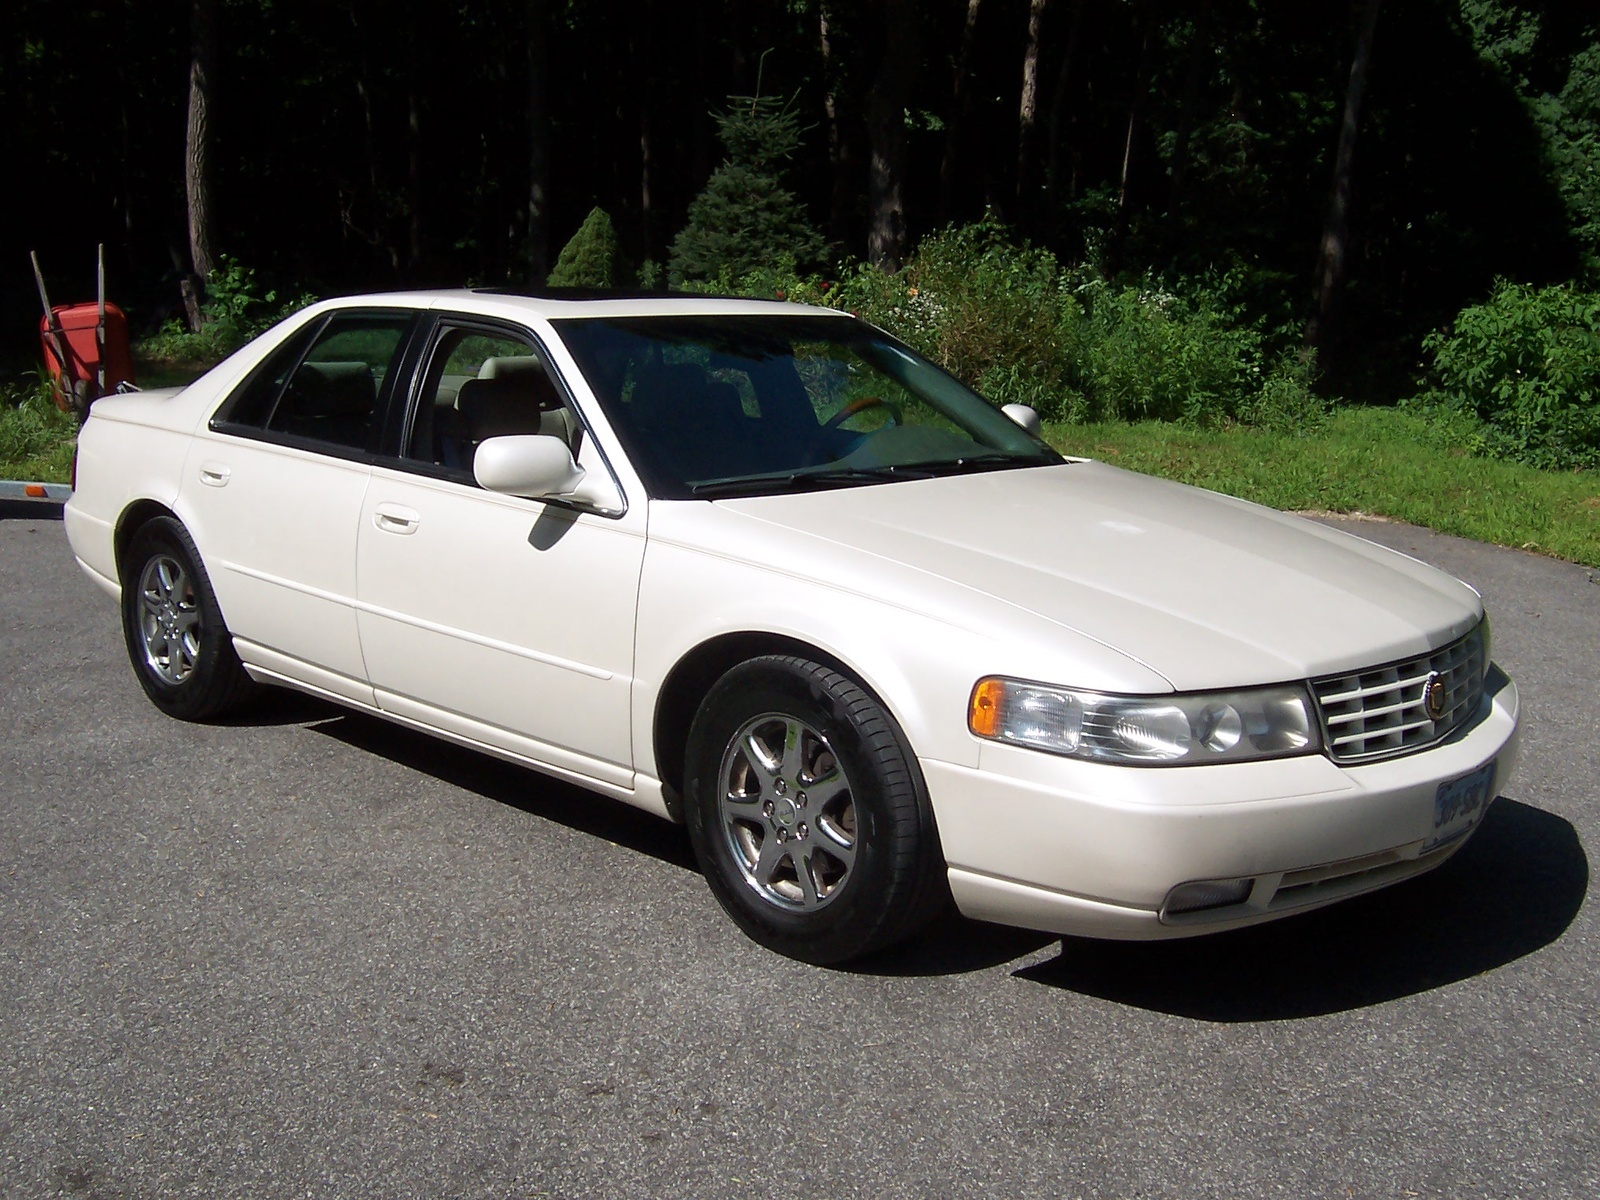 Cadillac Ats V Coupe >> 1999 Cadillac Seville - Overview - CarGurus